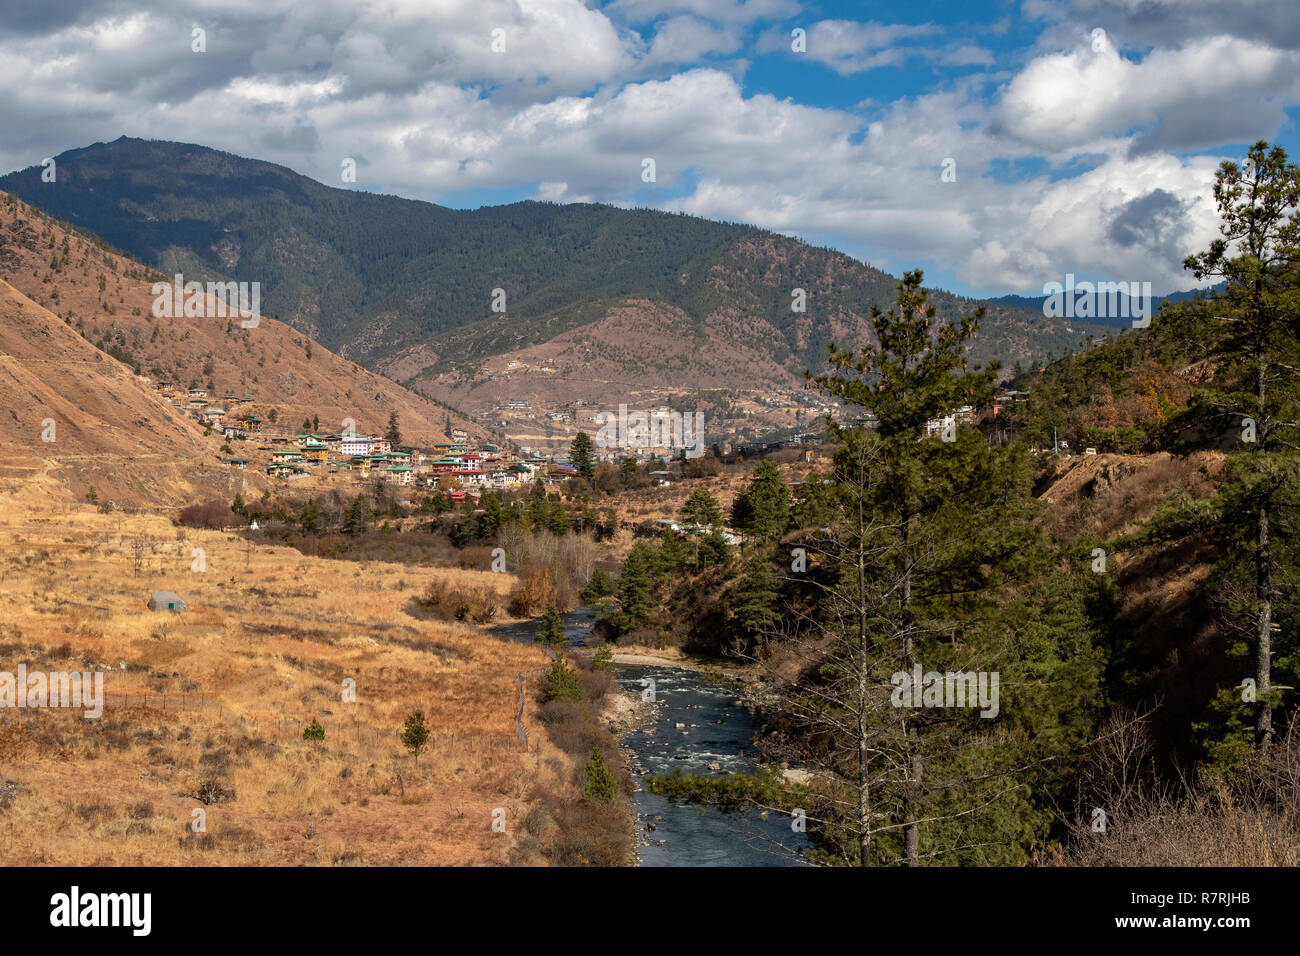 Wang Chu River and Thimphu, Bhutan - Stock Image